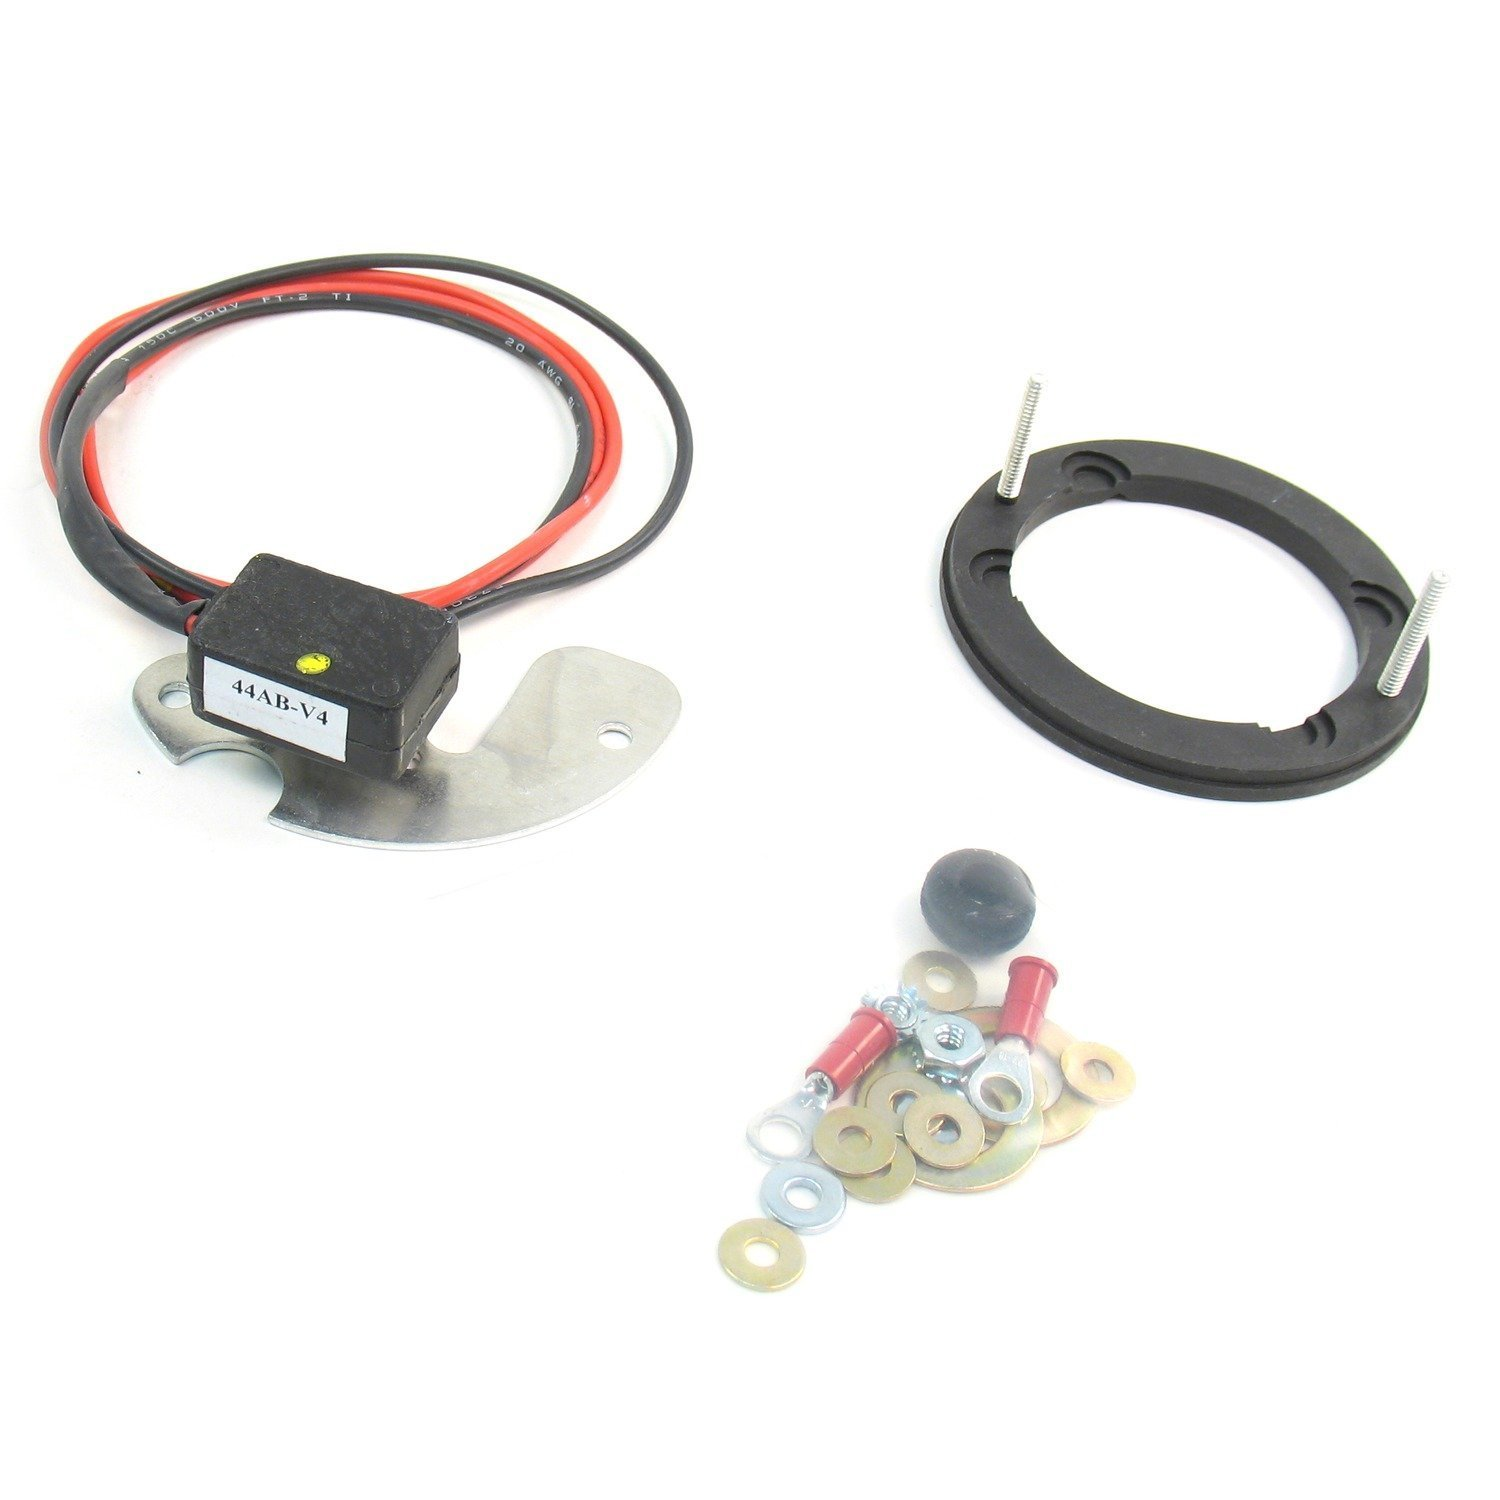 Pertronix 1181//40011 Ignitor /& Flame-Thrower 40,000 Volts 1.5 Ohm Coil Kit for Delco 8 Cylinder